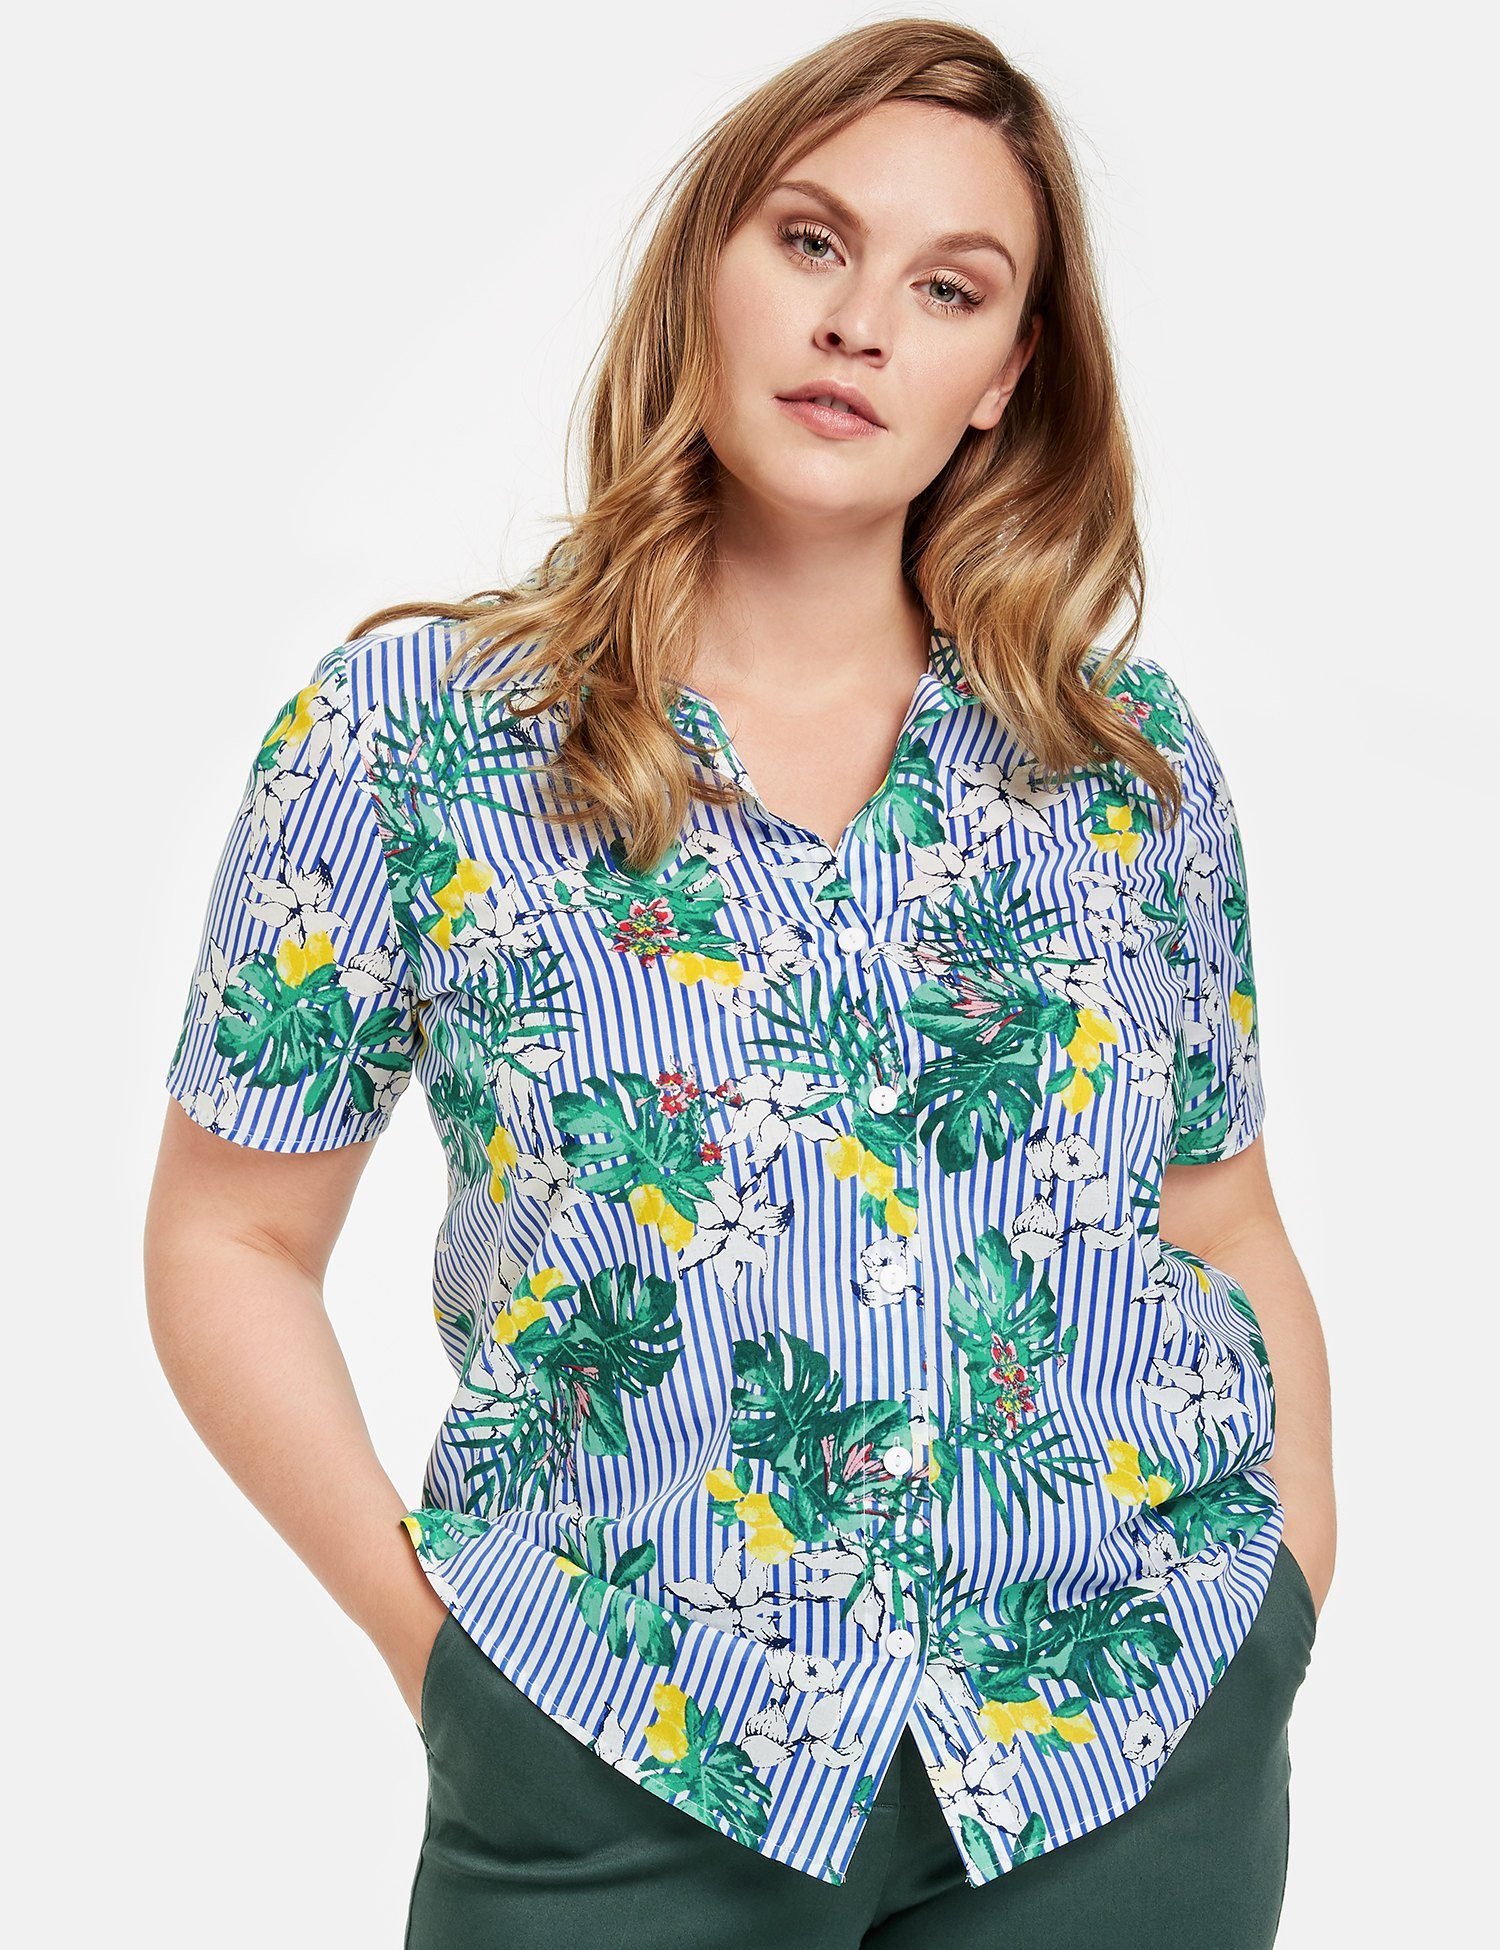 Samoon Bluse Kurzarm 1/2 Arm Bluse mit Muster-Mix